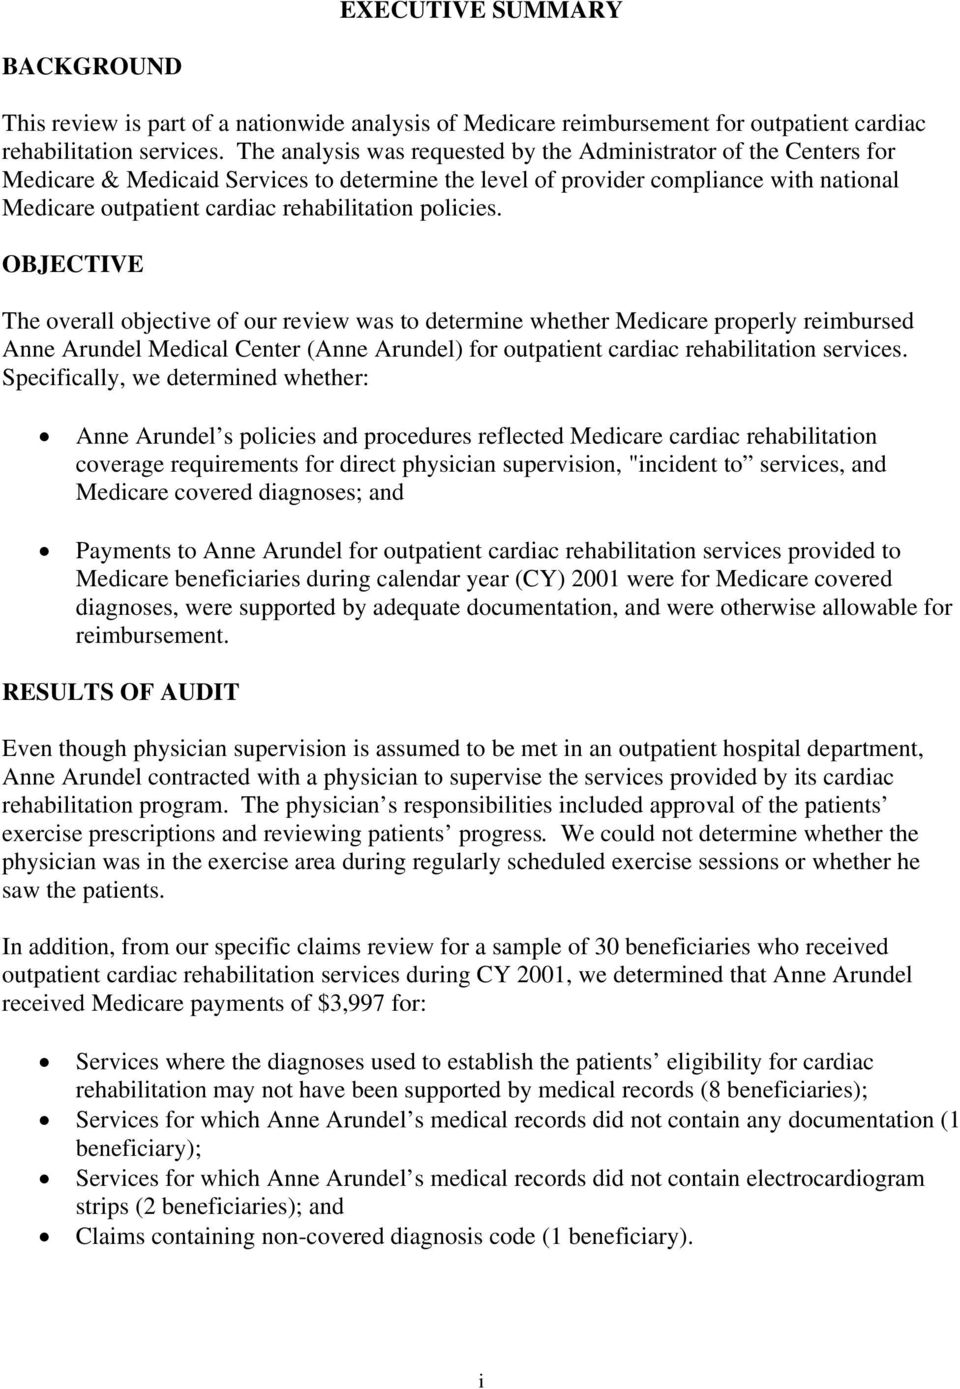 policies. OBJECTIVE The overall objective of our review was to determine whether Medicare properly reimbursed Anne Arundel Medical Center (Anne Arundel) for outpatient cardiac rehabilitation services.